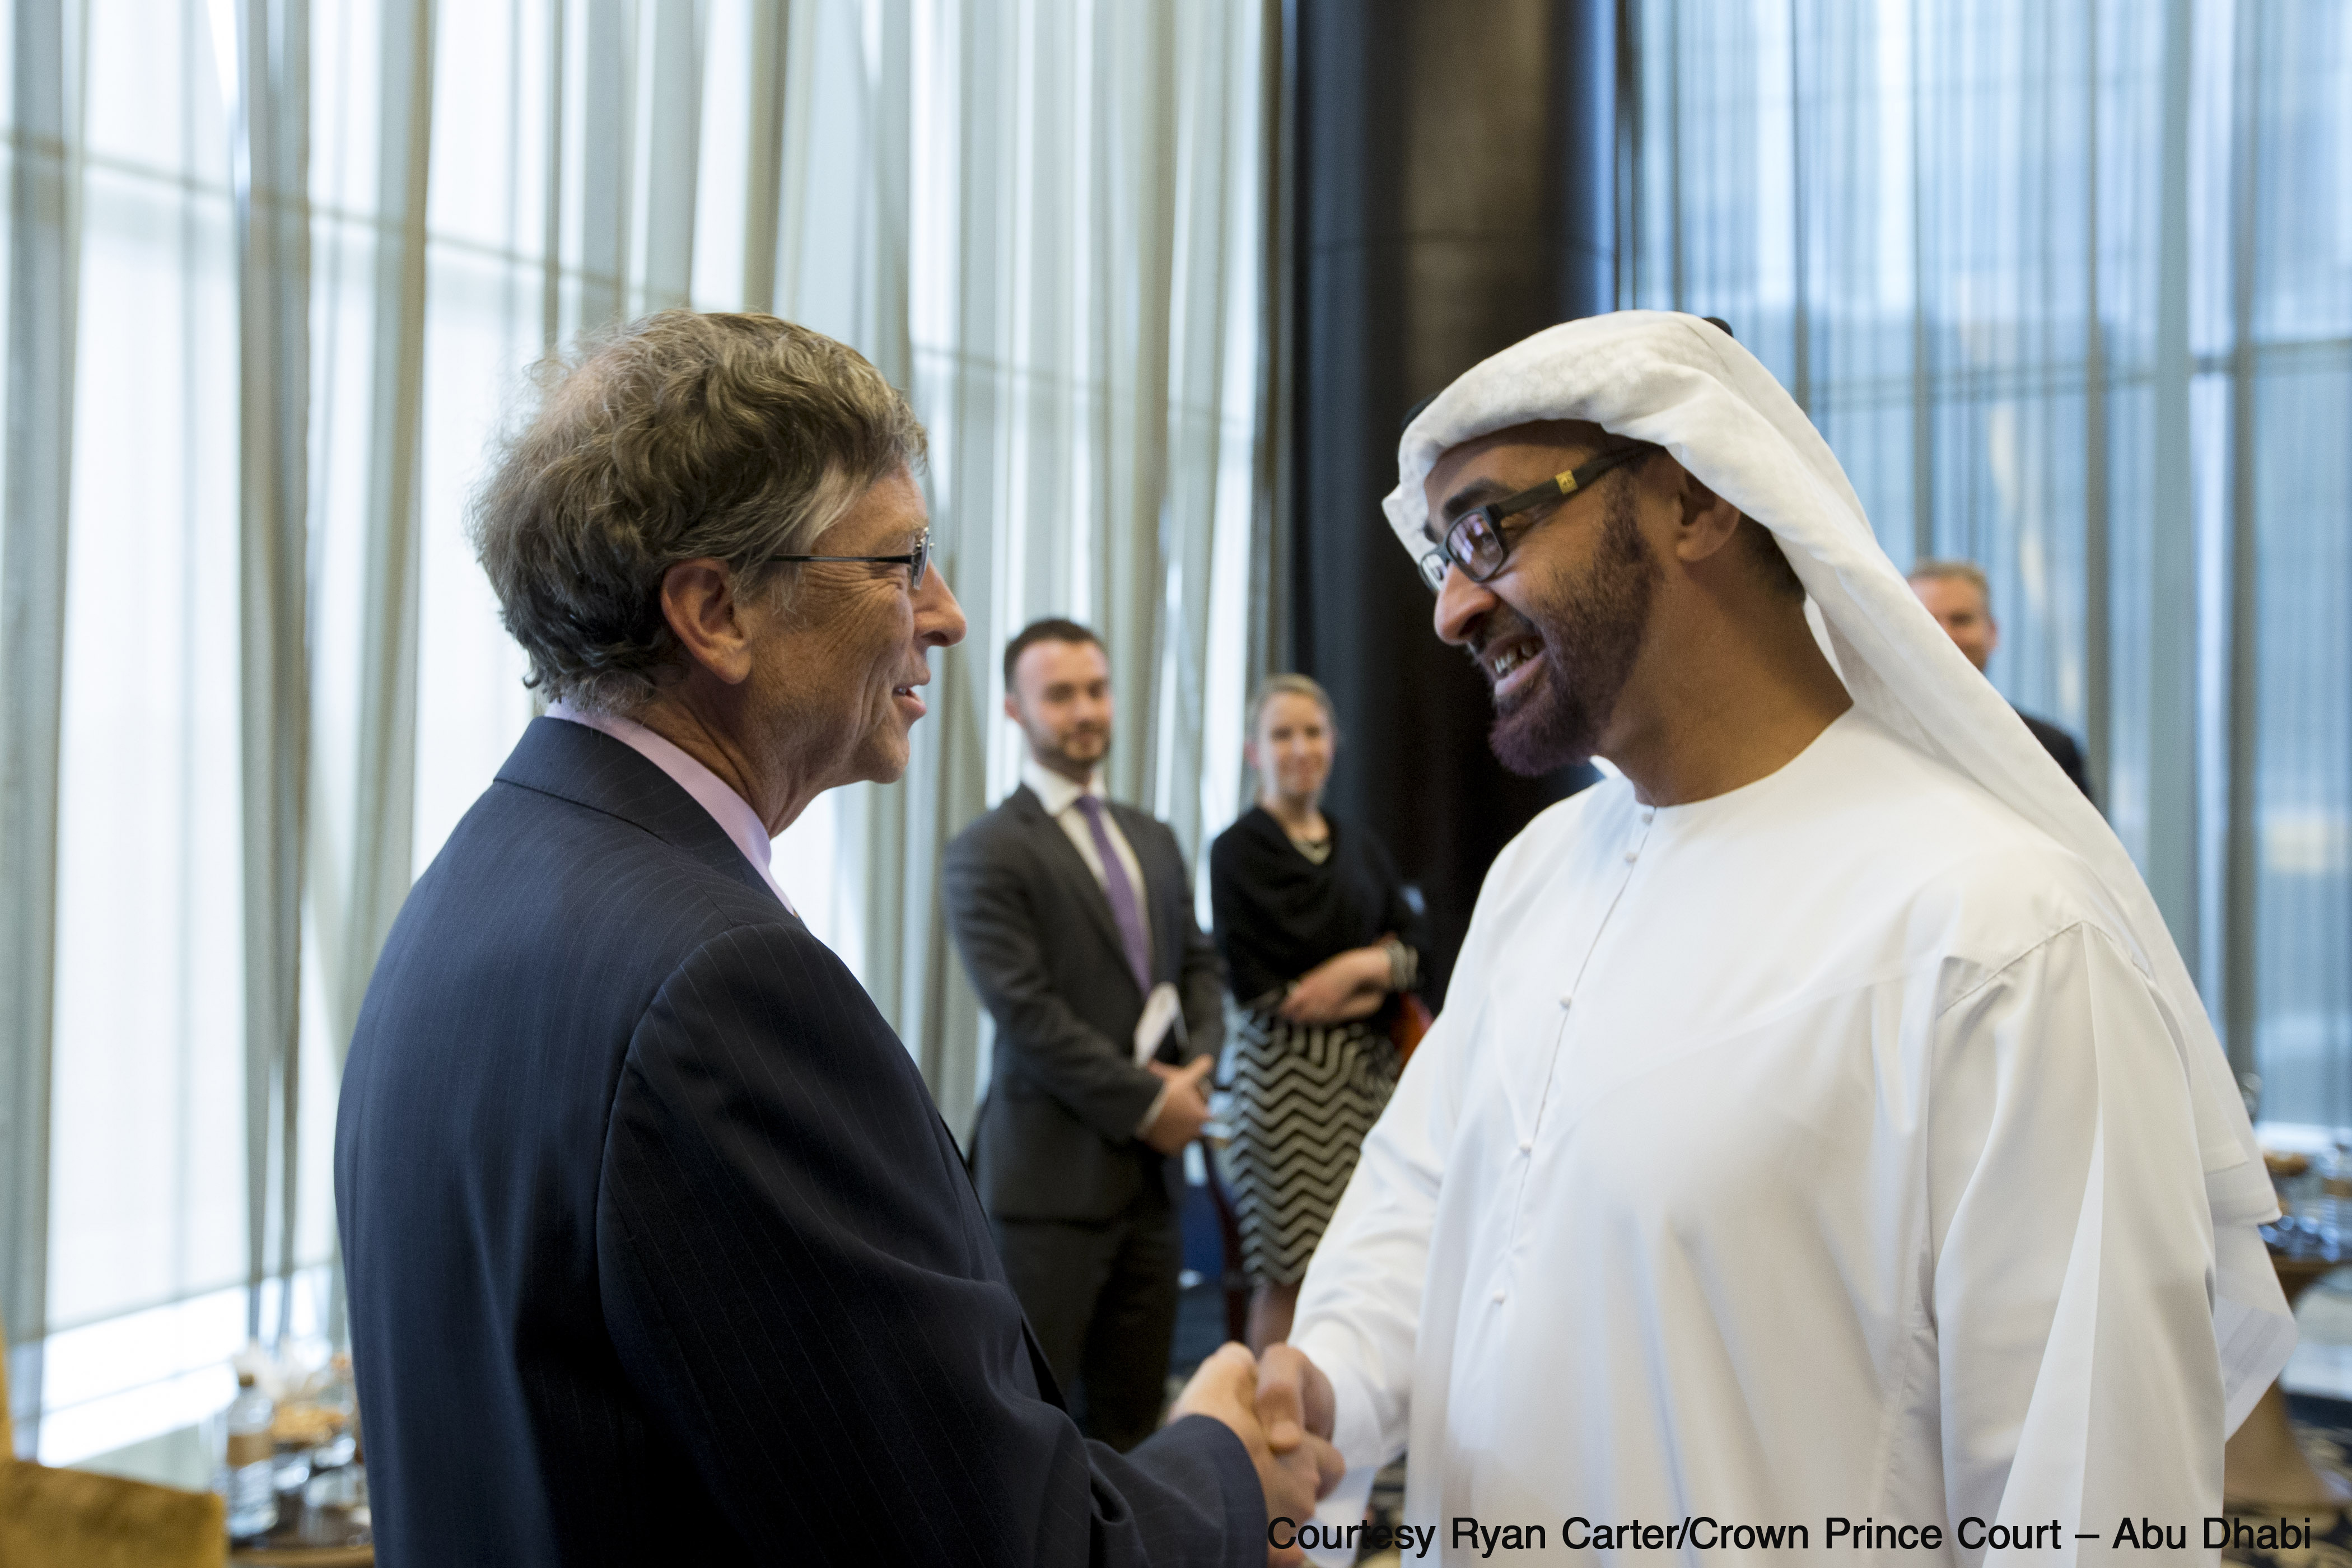 Bill Gates and His Highness General Sheikh Mohamed bin Zayed Al Nahyan, Crown Prince of Abu Dhabi, at the Global Vaccine Summit